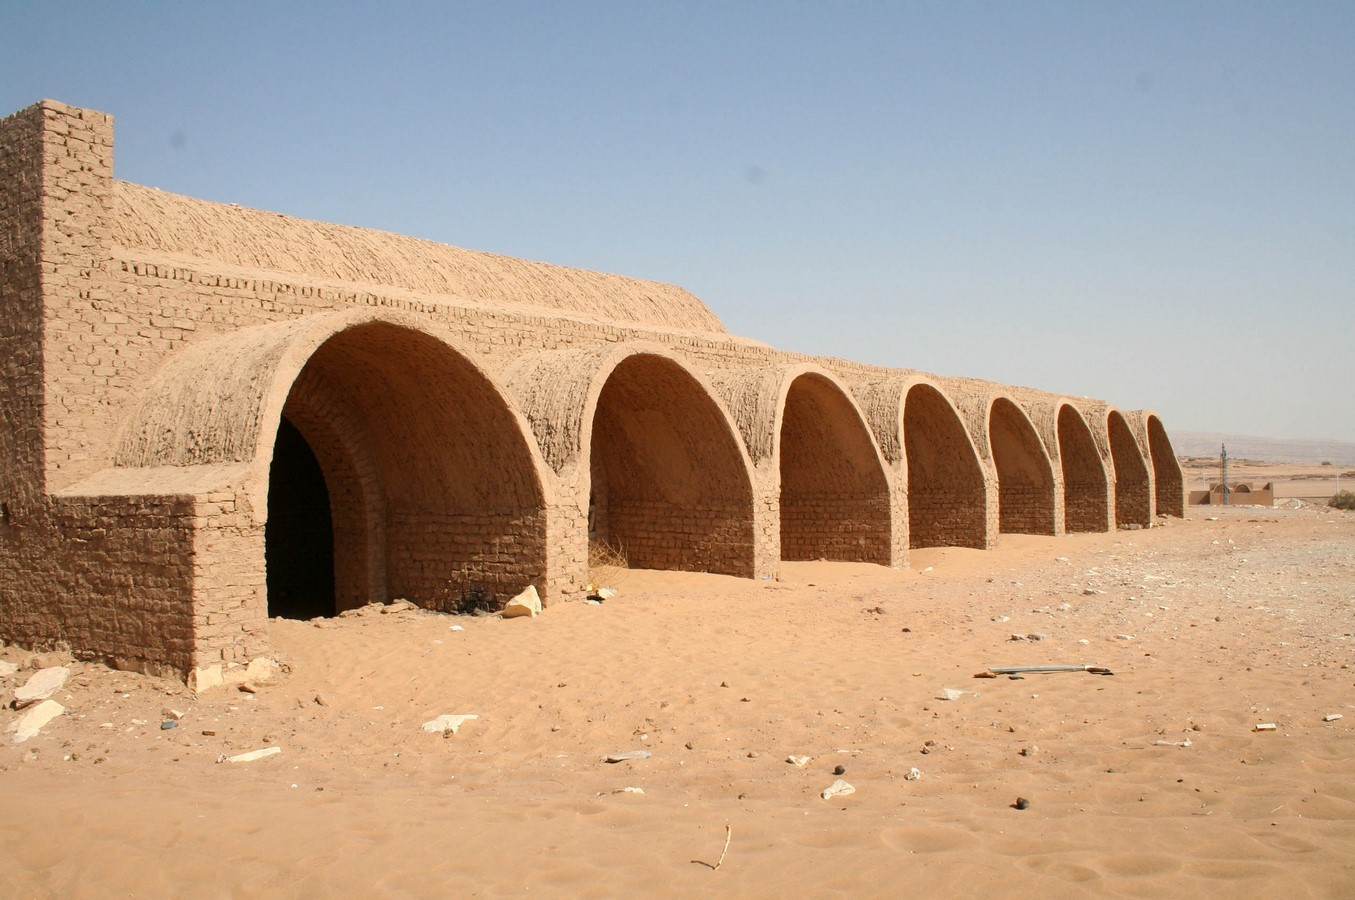 Hassan Fathy: Egypt's architect of the poor - Sheet2